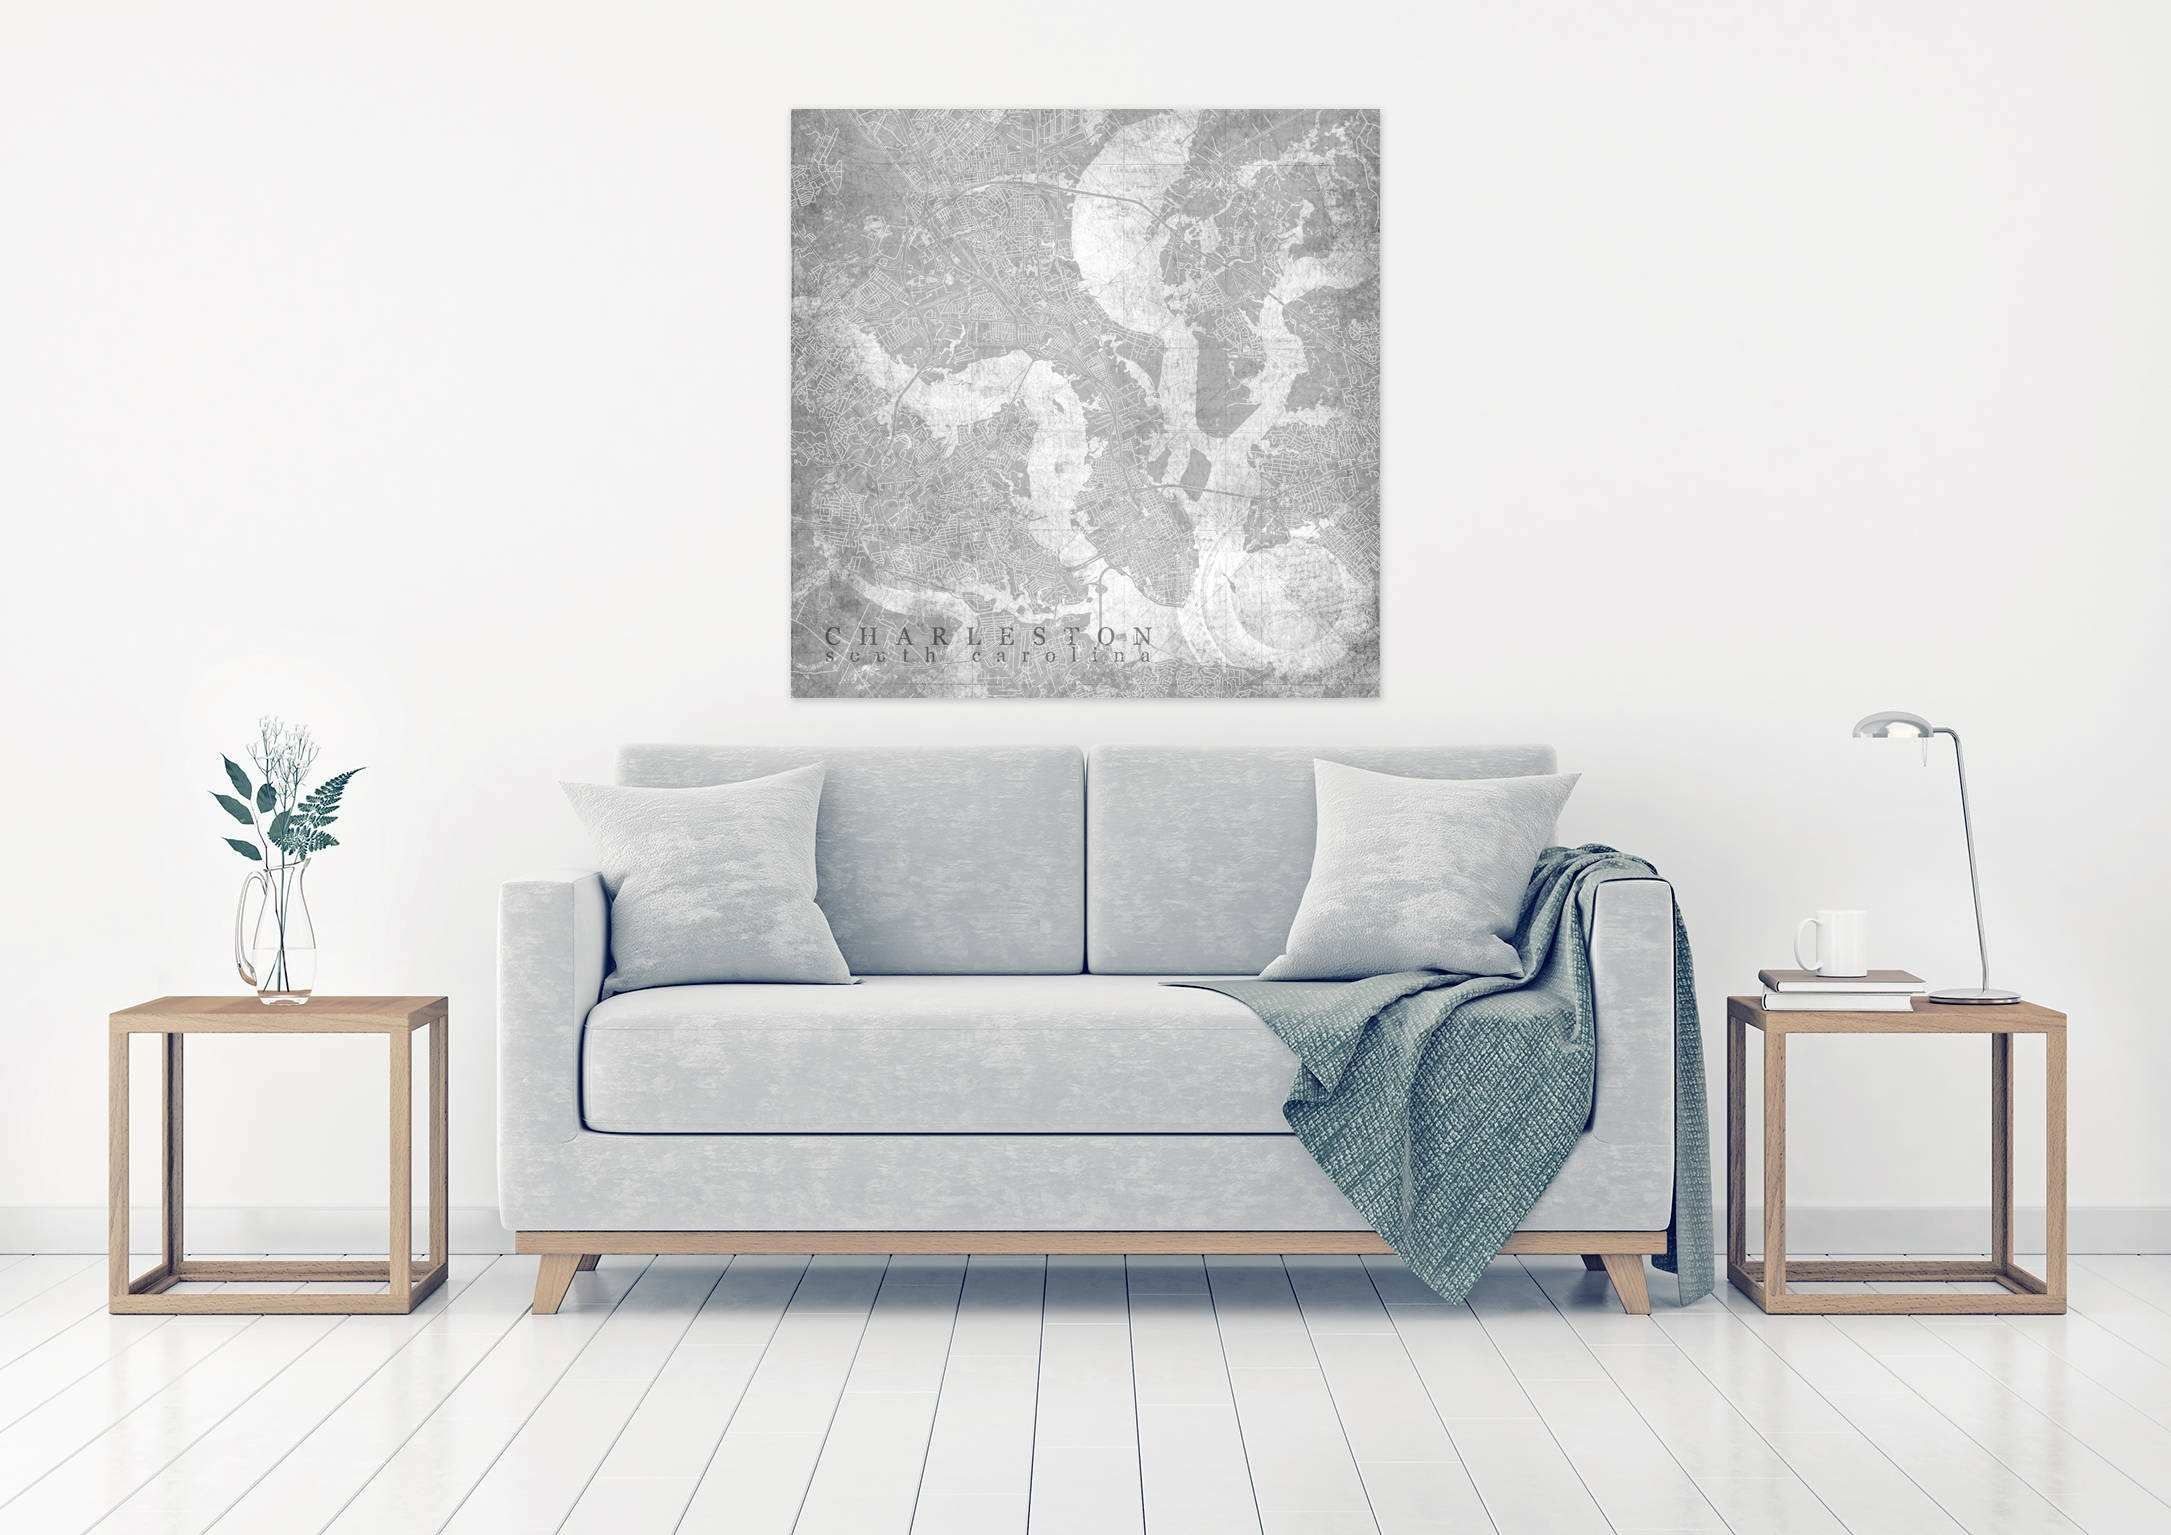 CHARLESTON SC Canvas Print South Carolina Vintage map Charleston